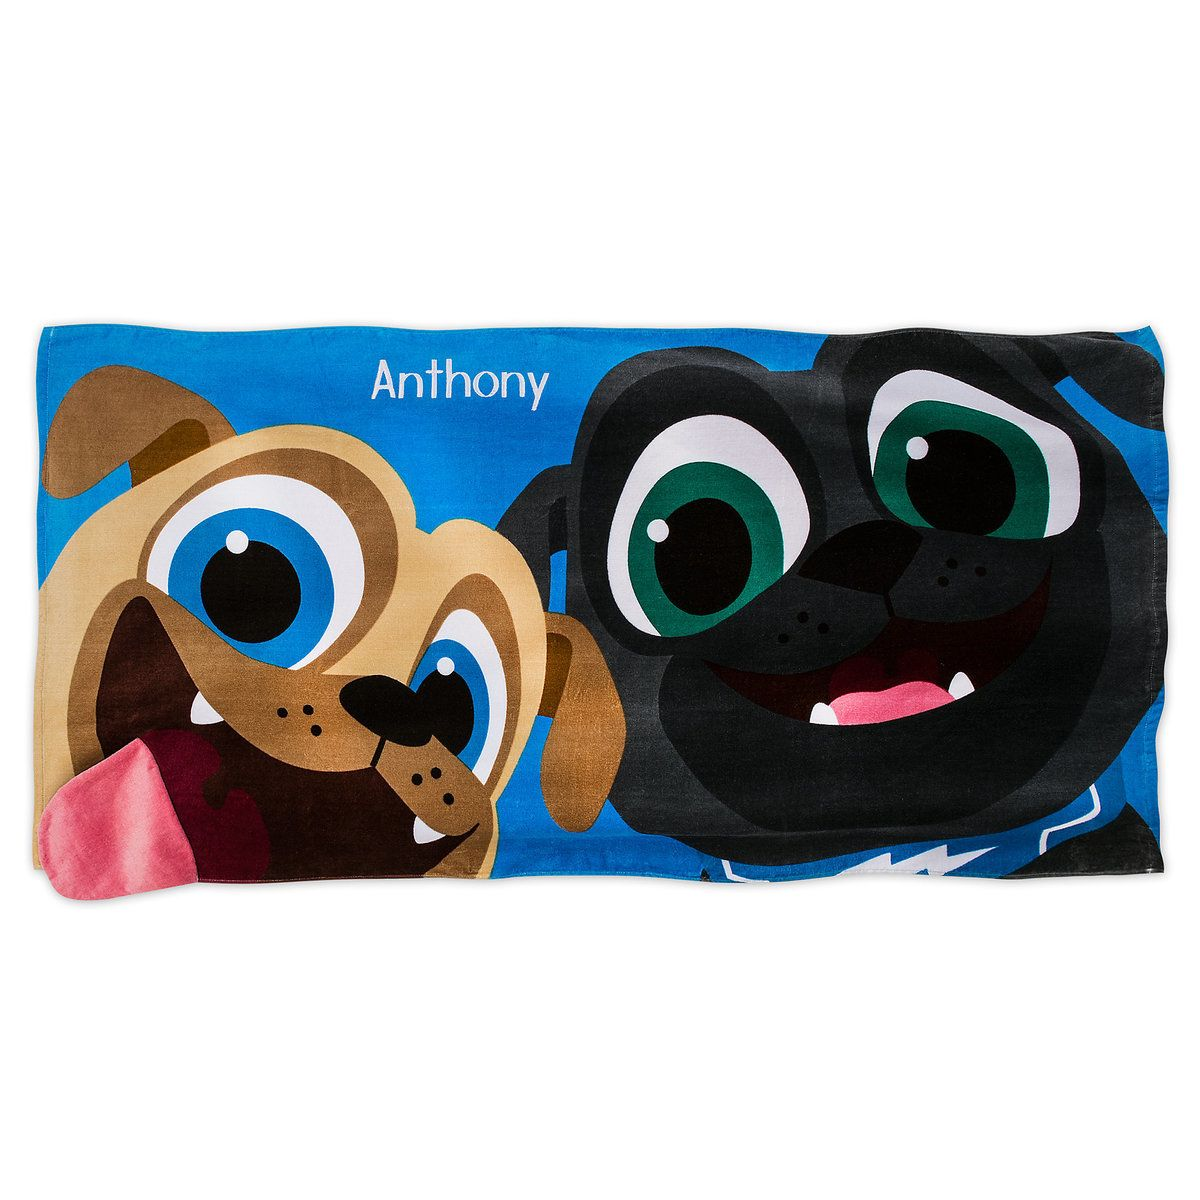 Puppy Dog Pals Beach Towel For Kids Personalizable Beach Towel